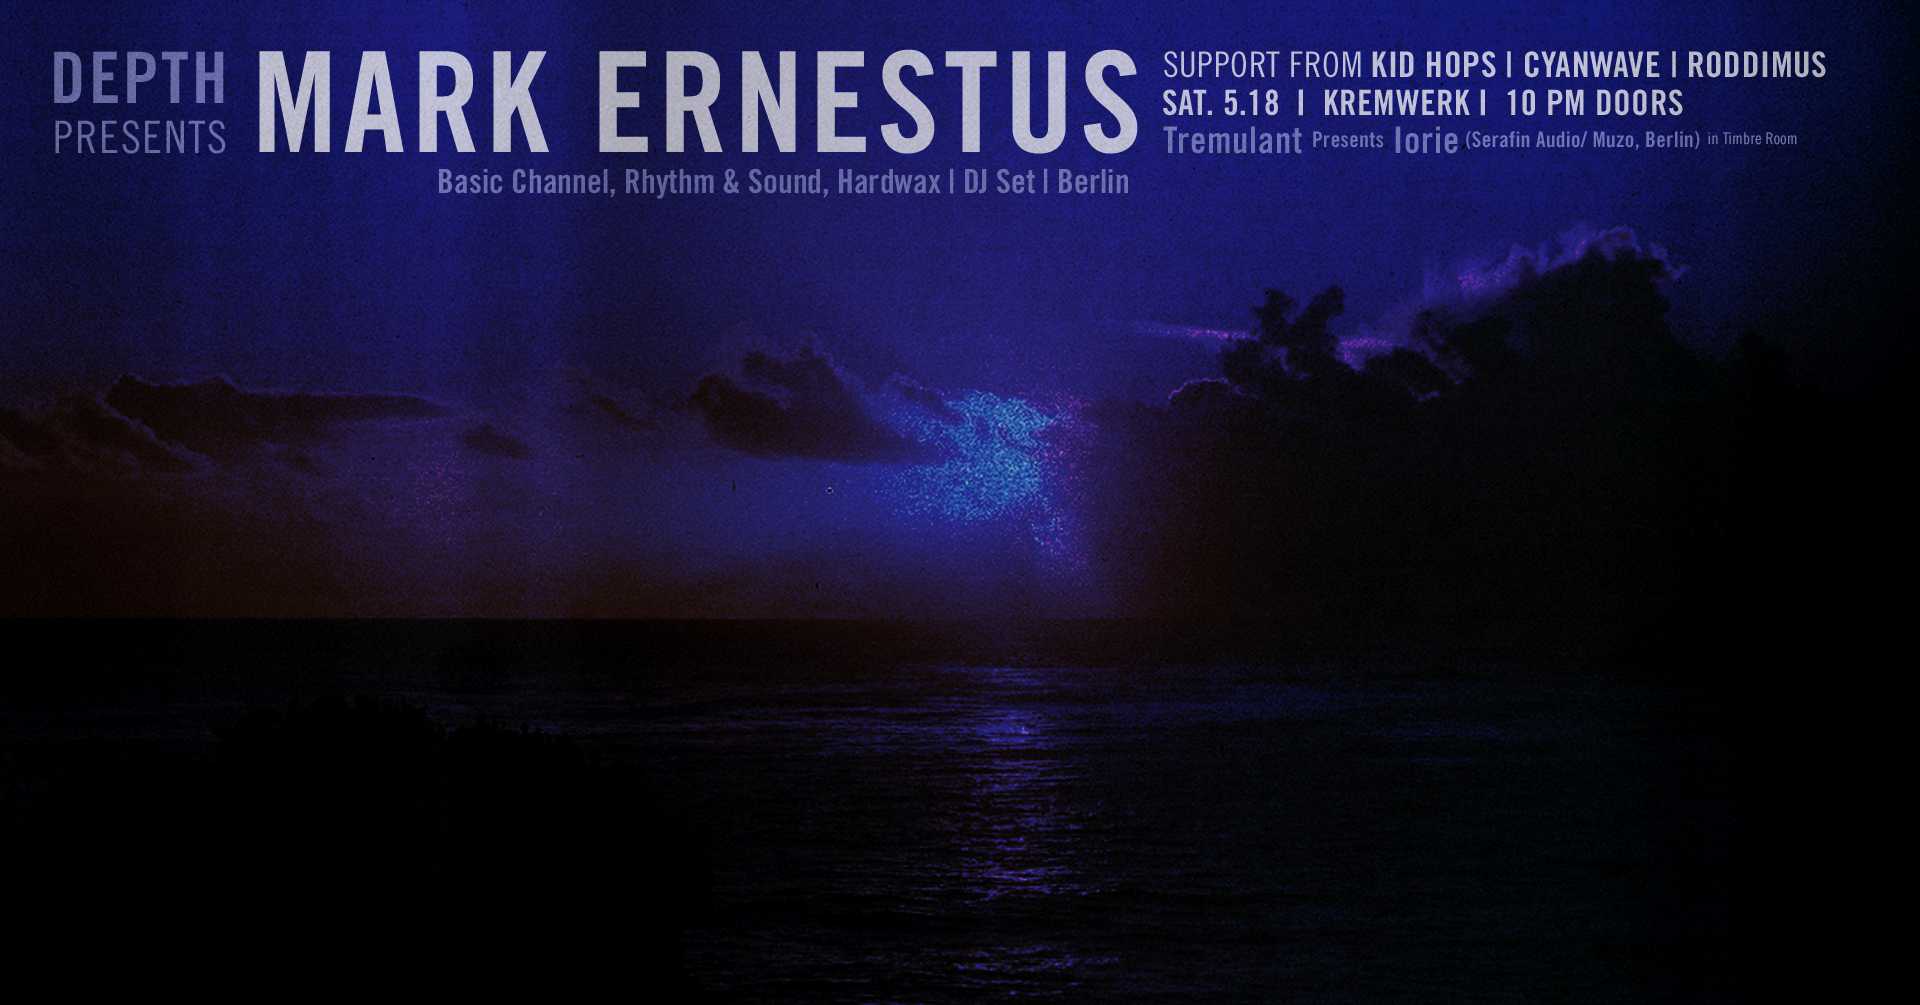 Depth Mark Ernestus - Cover Photo.jpg